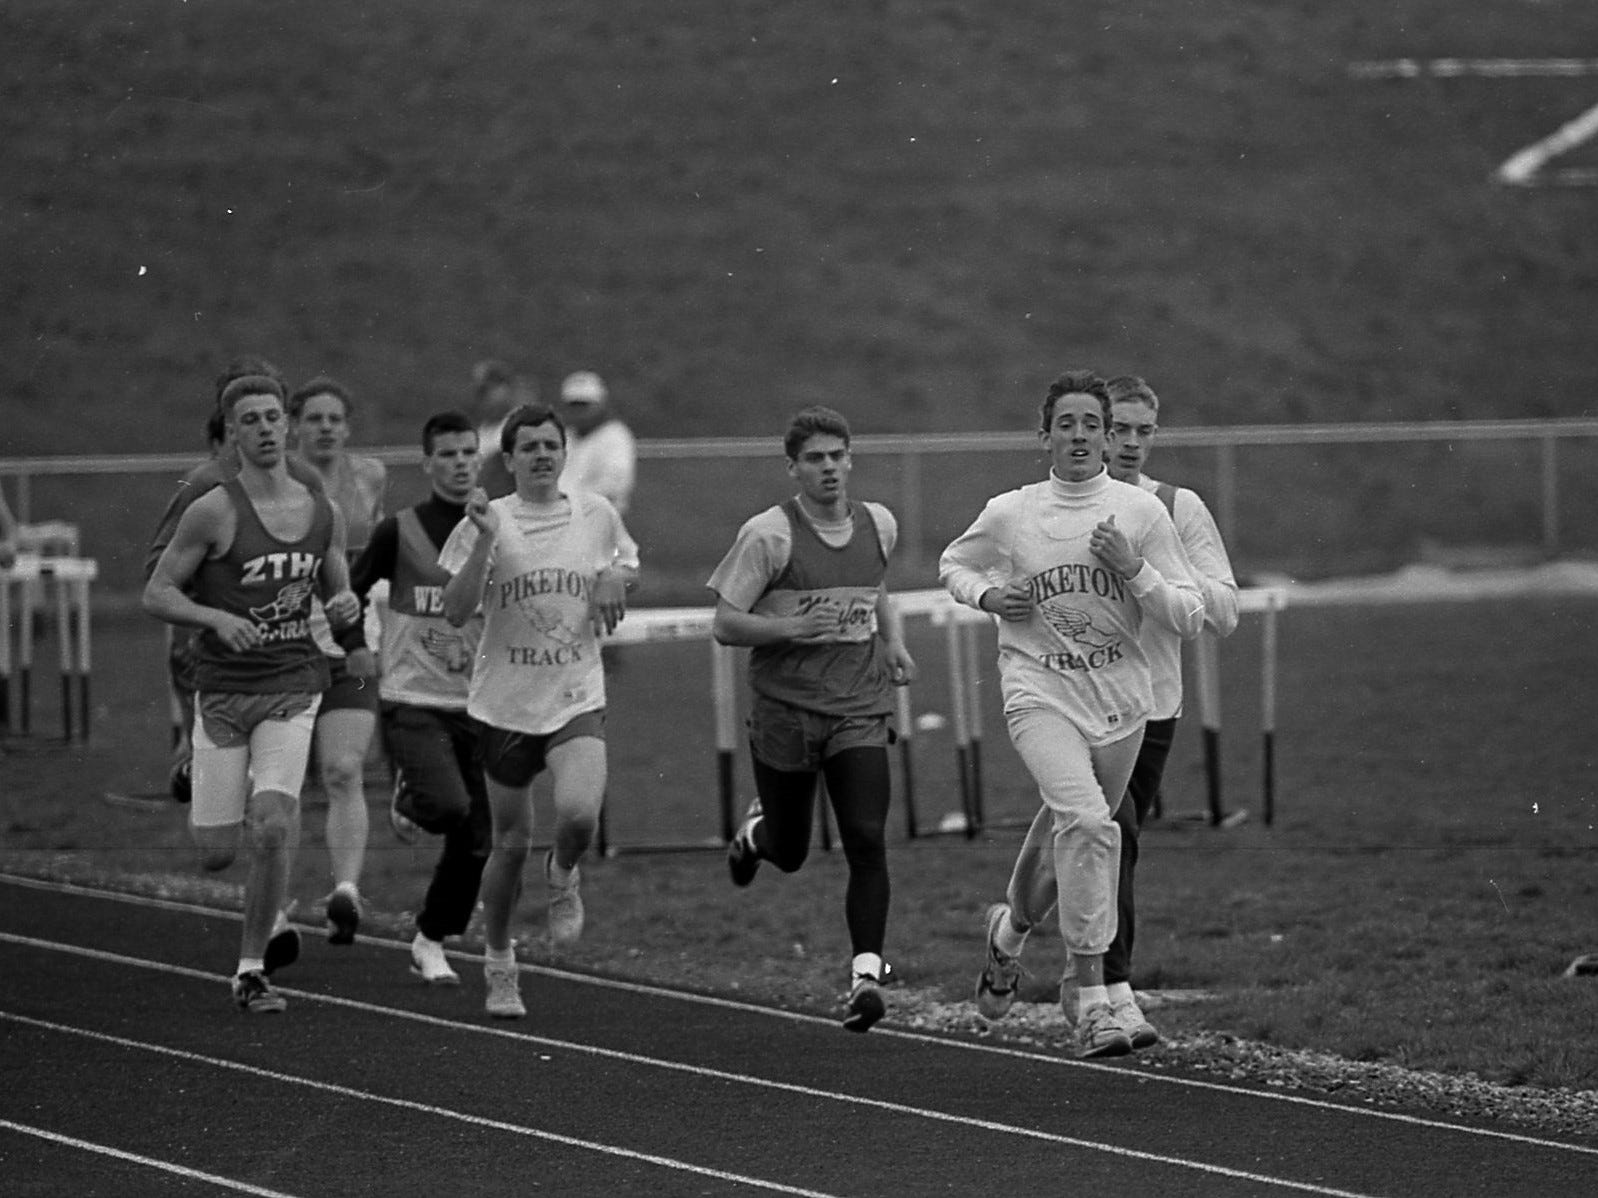 A track meet in April 1993.